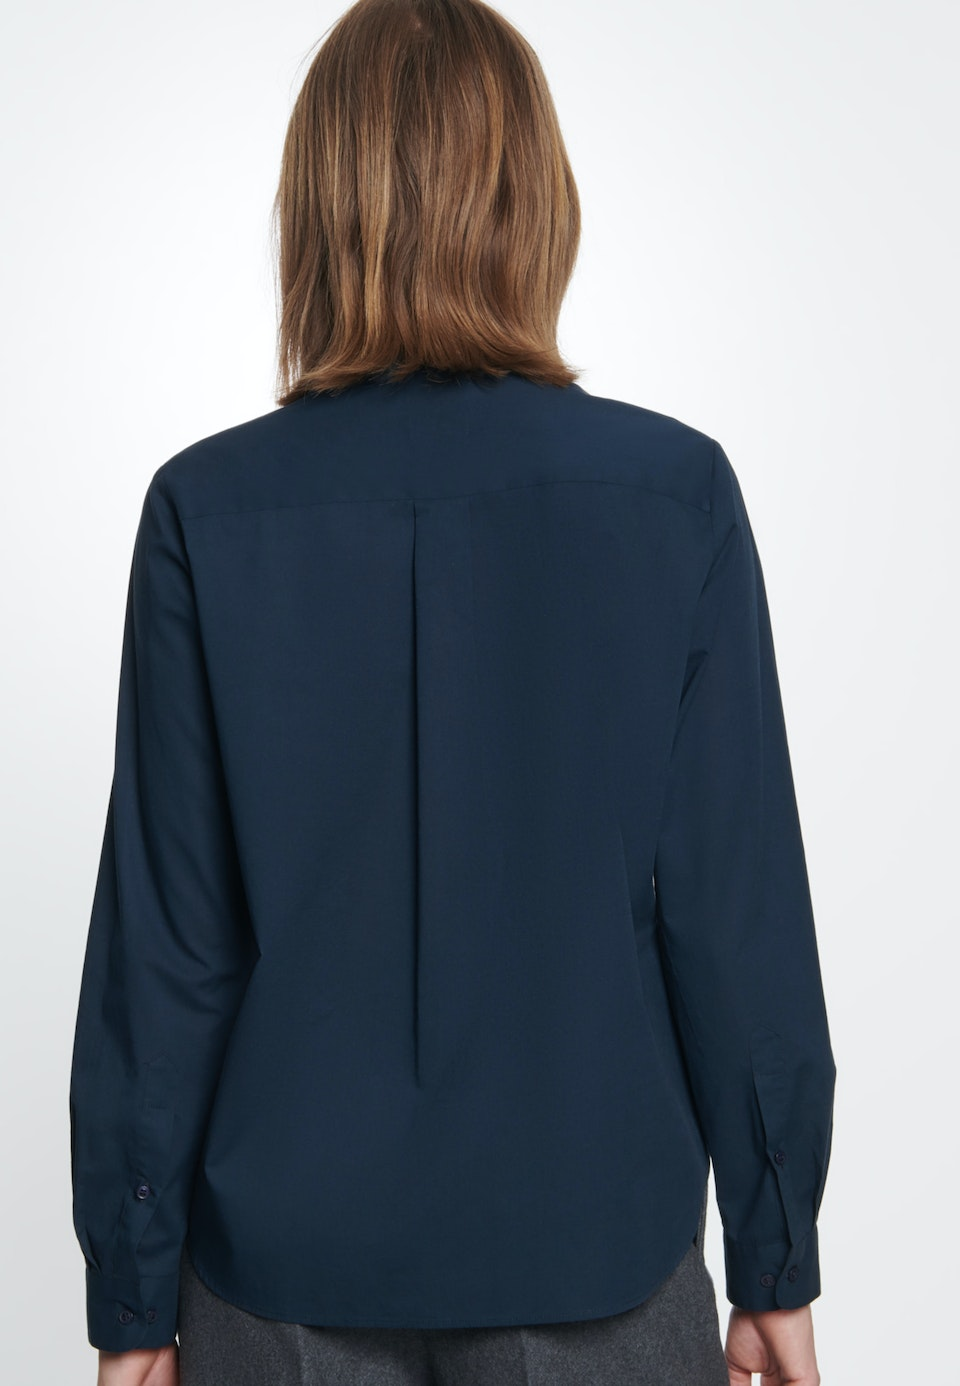 Voile Tie-Neck Blouse made of 100% Cotton in Dark blue |  Seidensticker Onlineshop